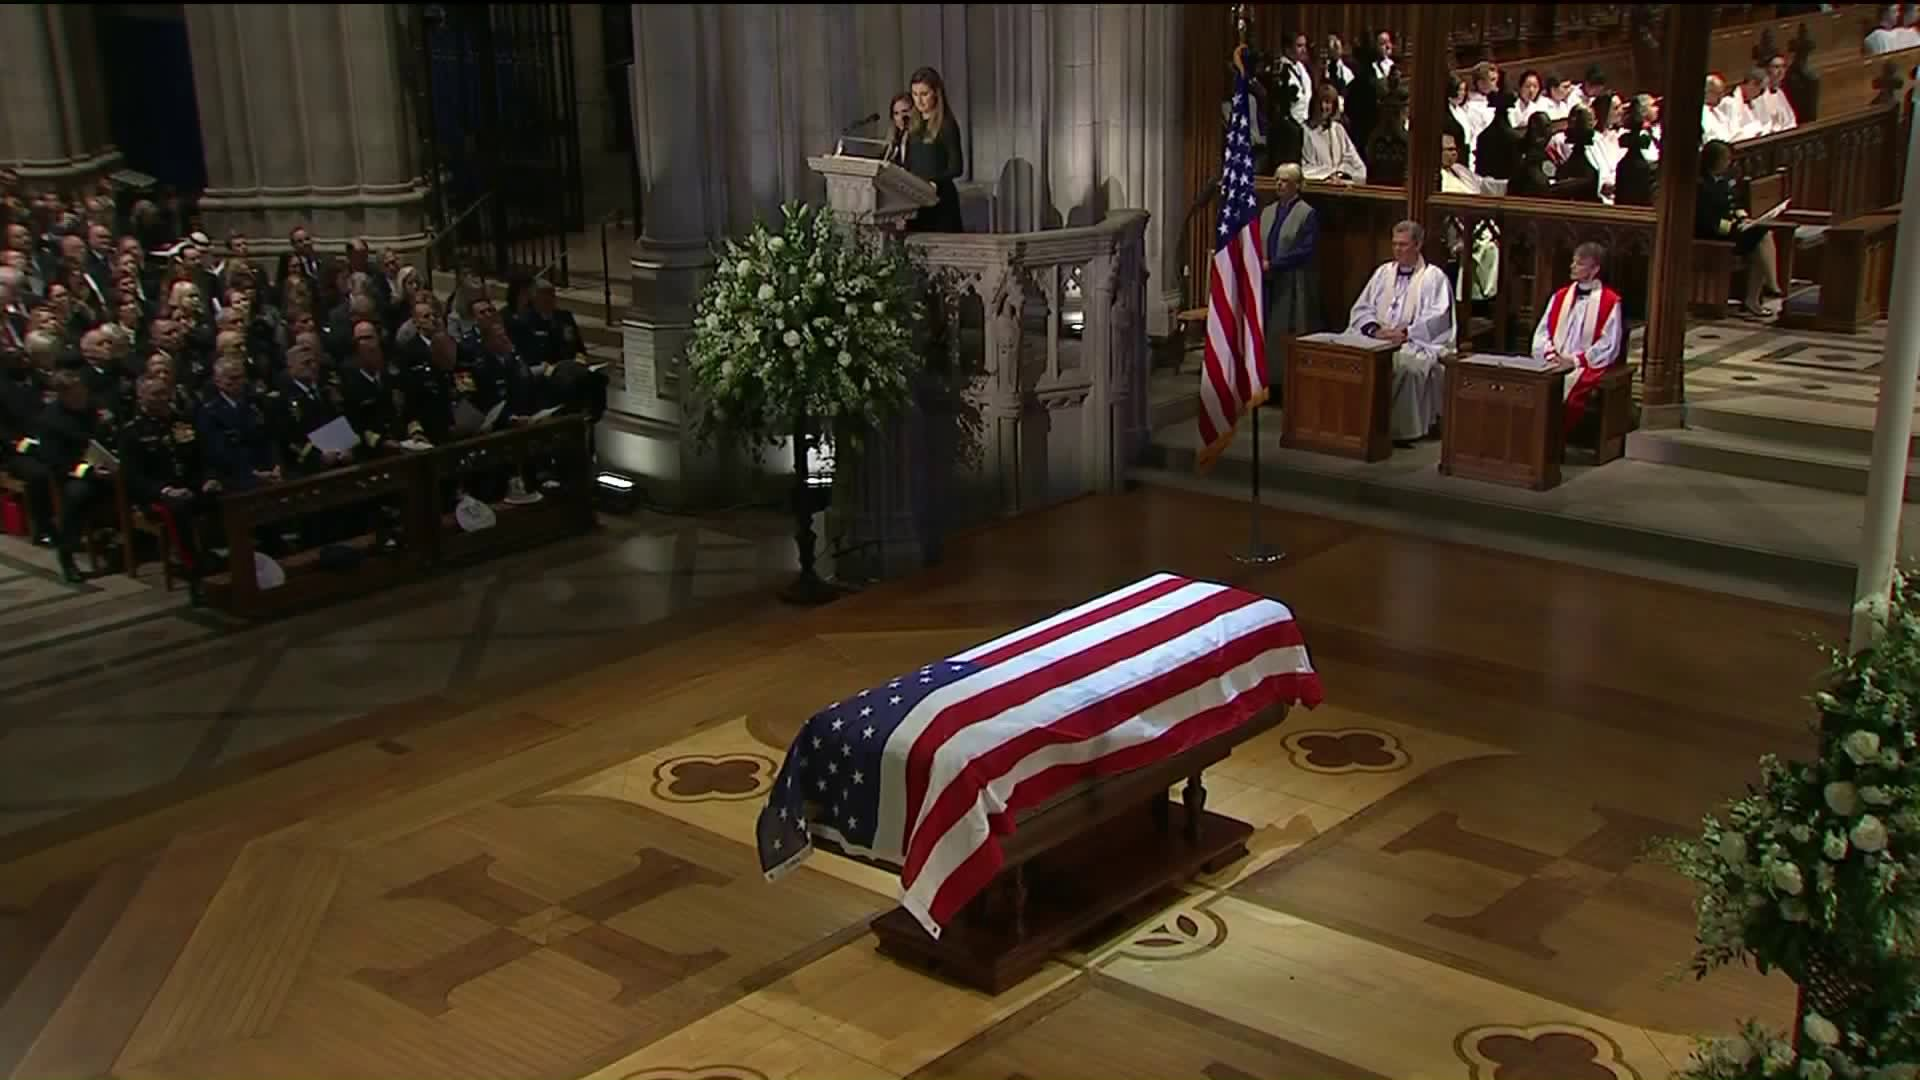 The casket of George H.W. Bush is seen during funeral services on Dec. 5, 2018. (Credit: CNN)